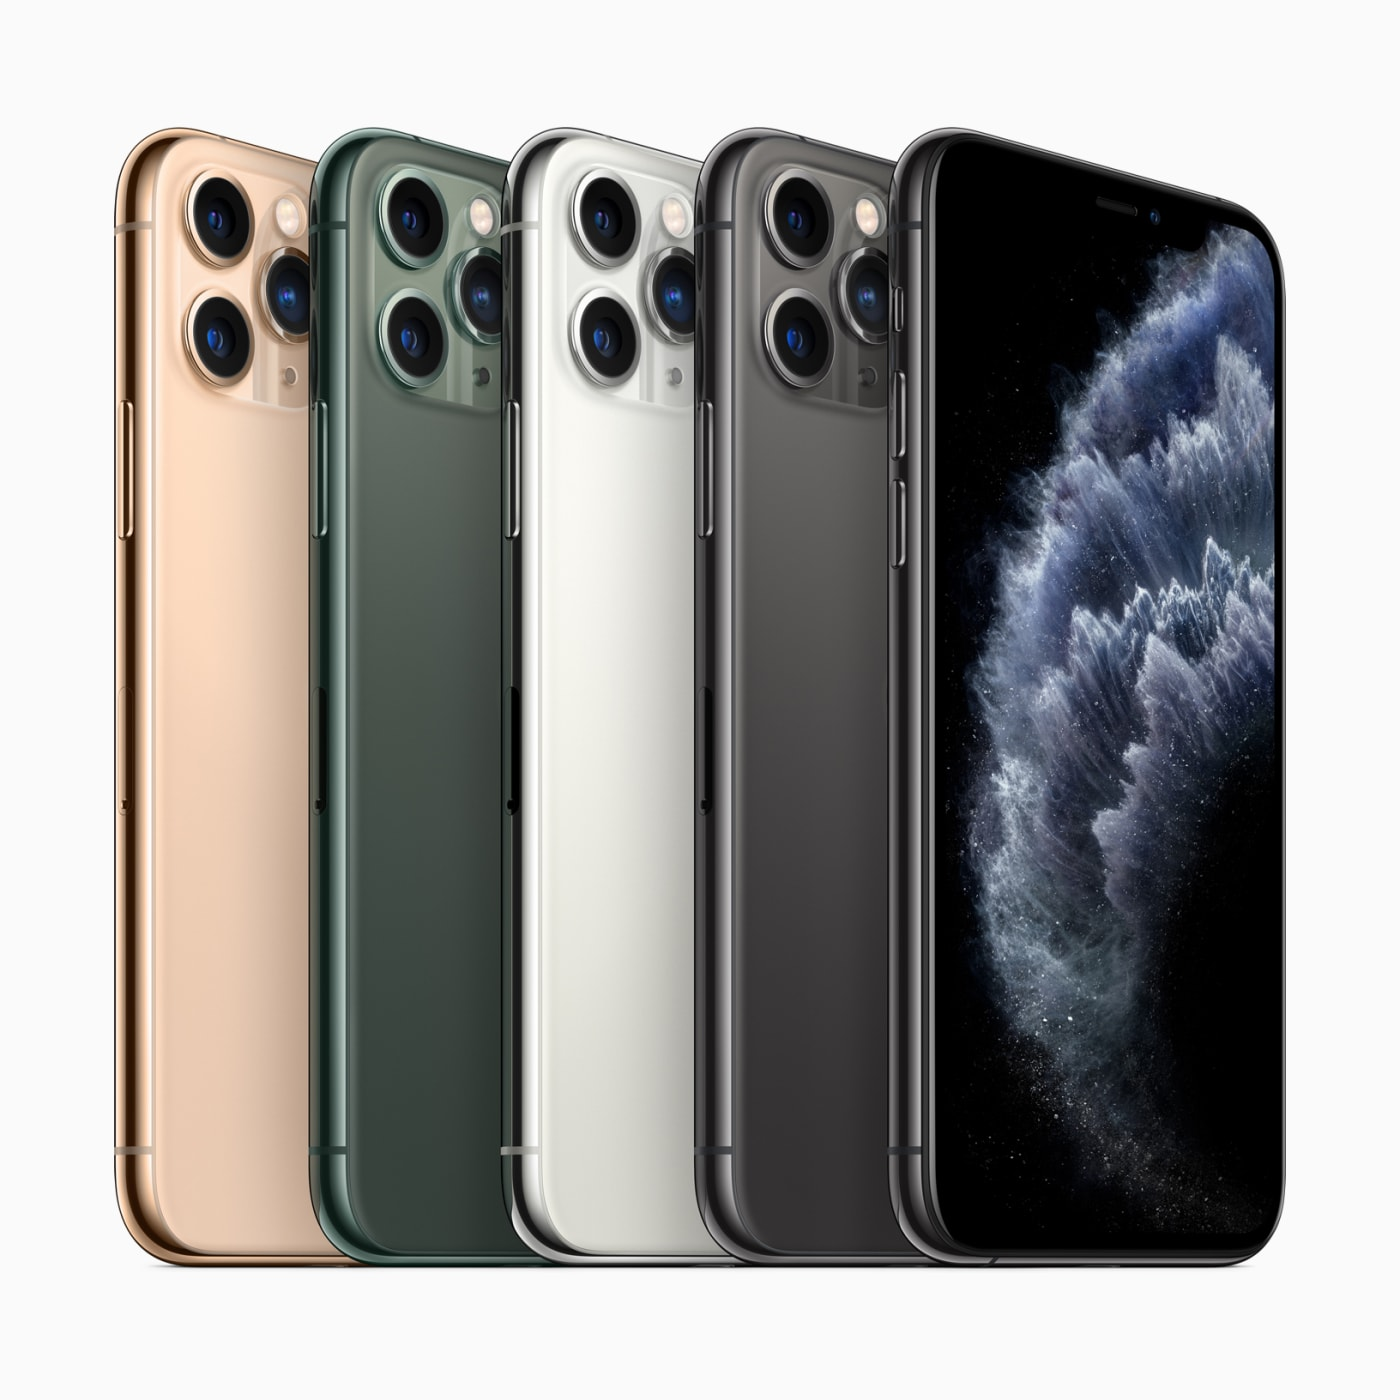 Foto: Apple/iPhone 11 Pro